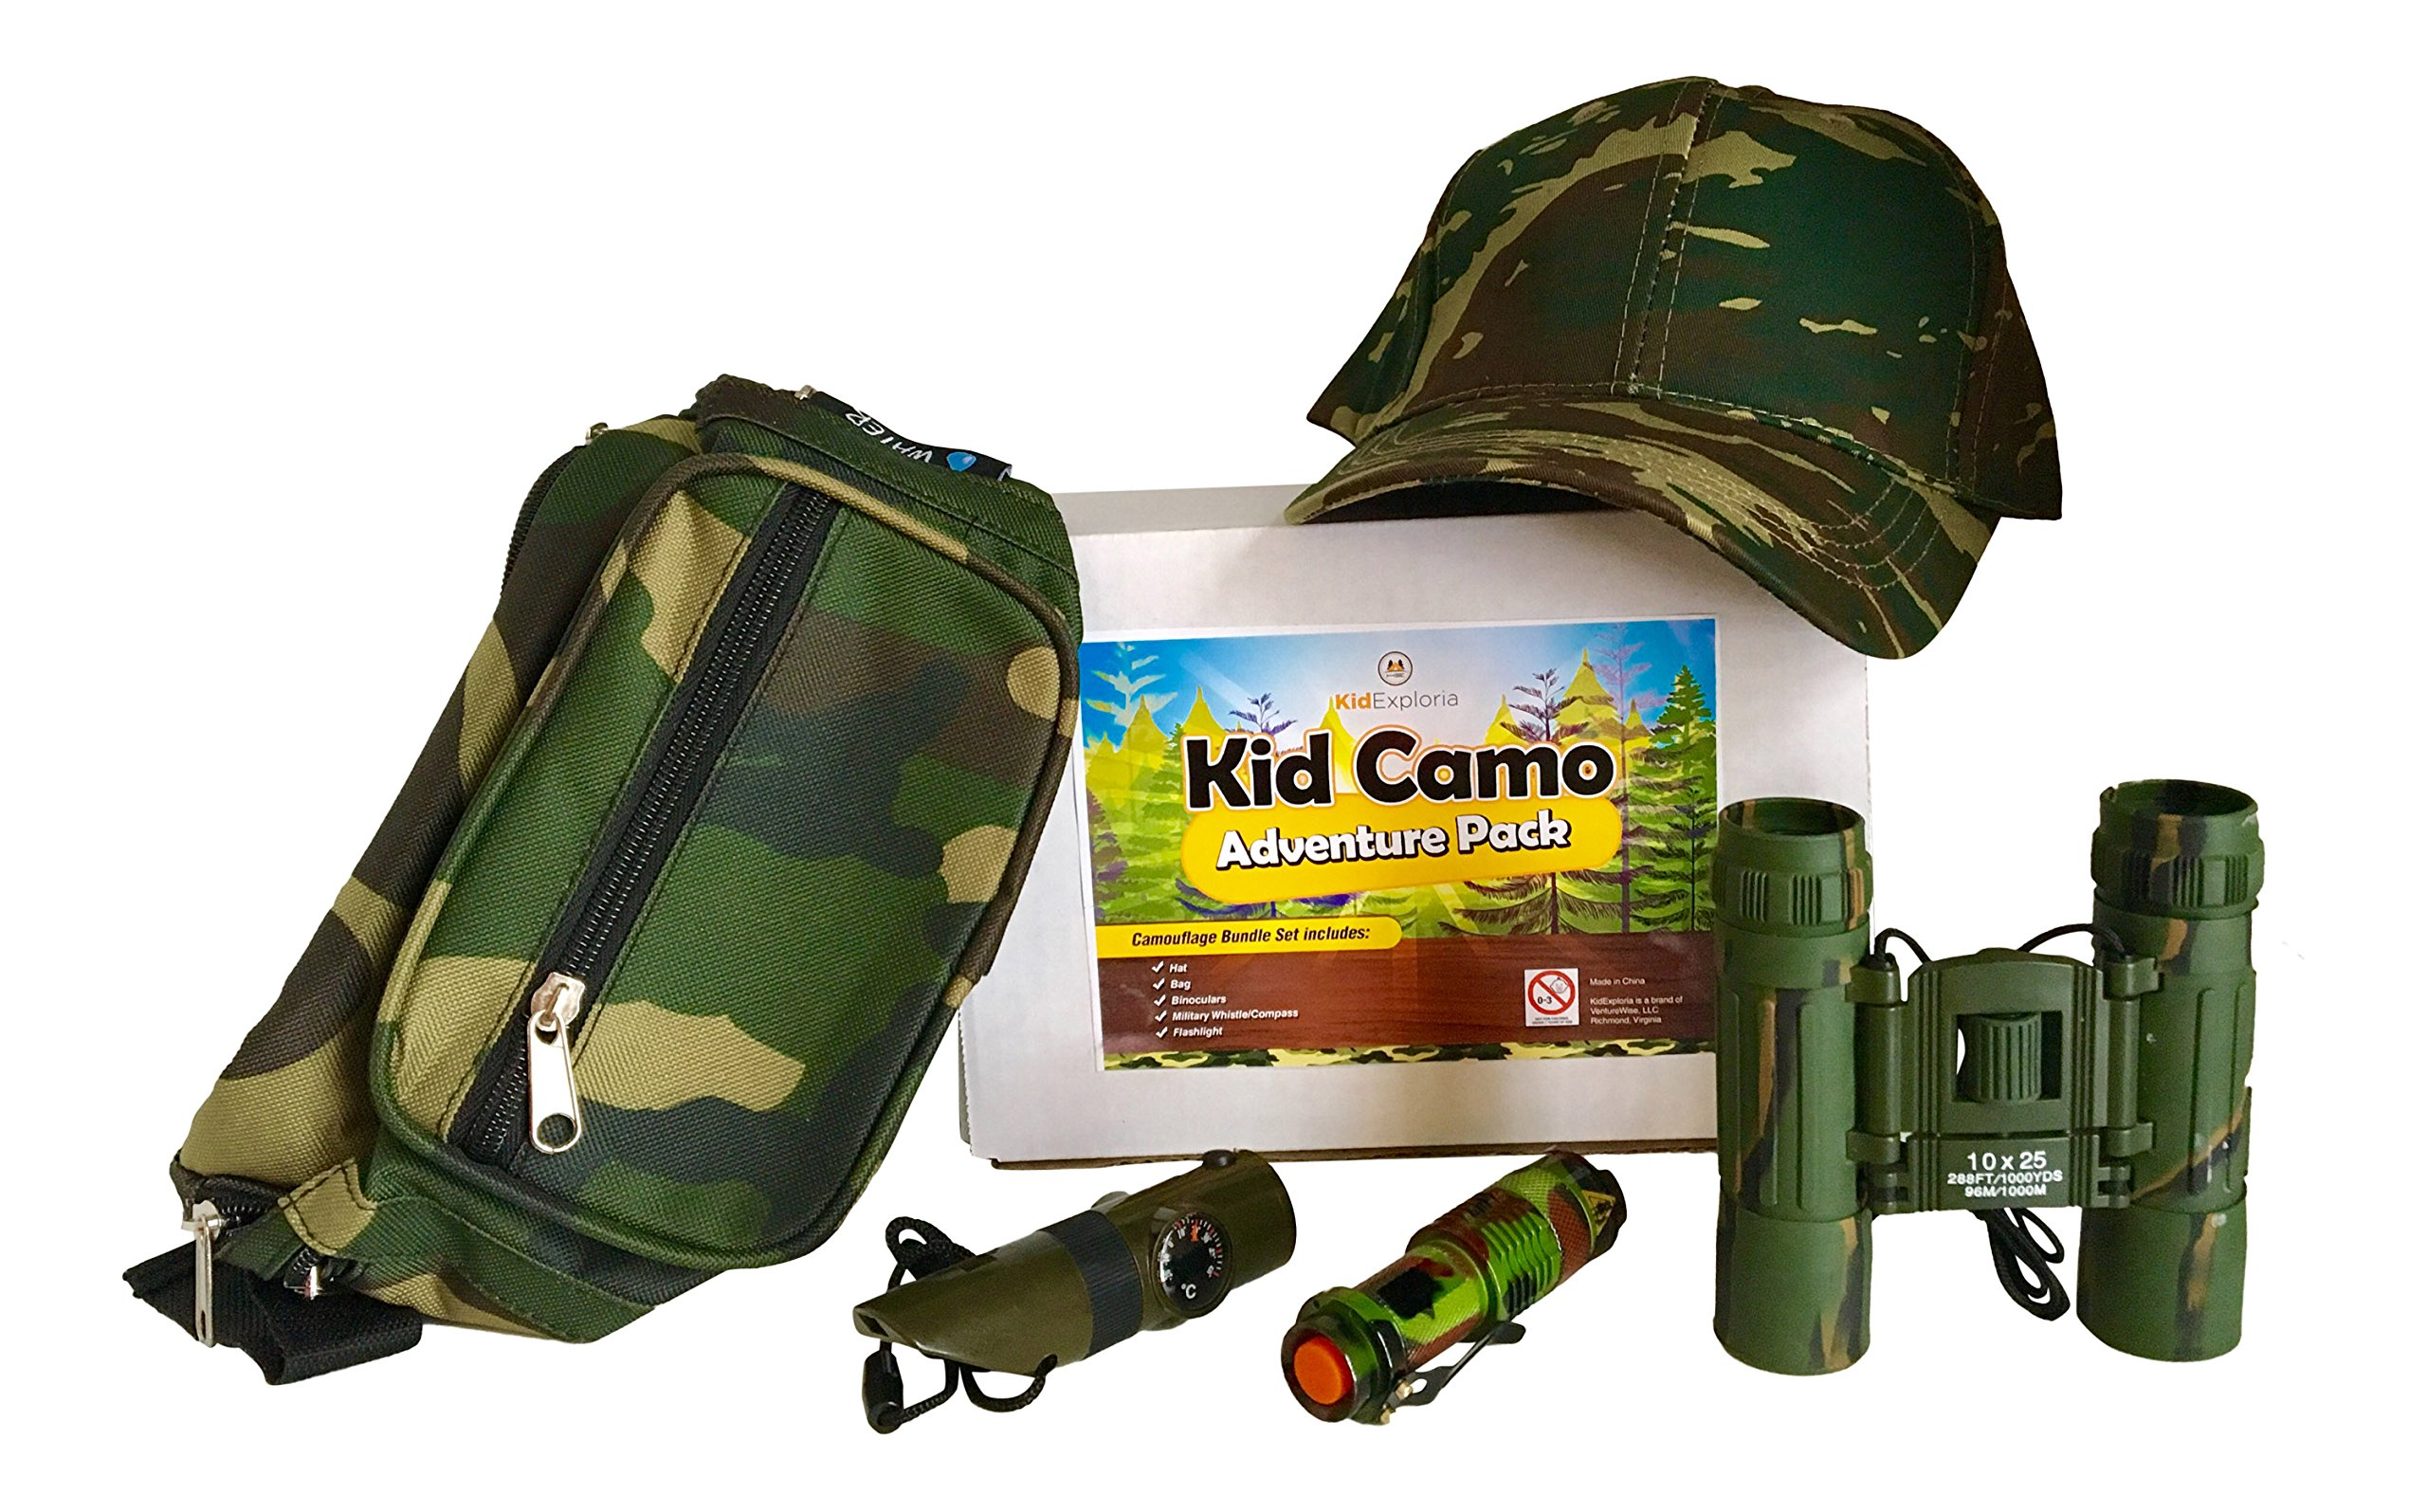 Kid Camo Hat and Survival Gear Kit for Boys: Army Compact Camouflage Binoculars, Cap, Bag, Compass Whistle 7 in 1 & Military Mini Flashlight